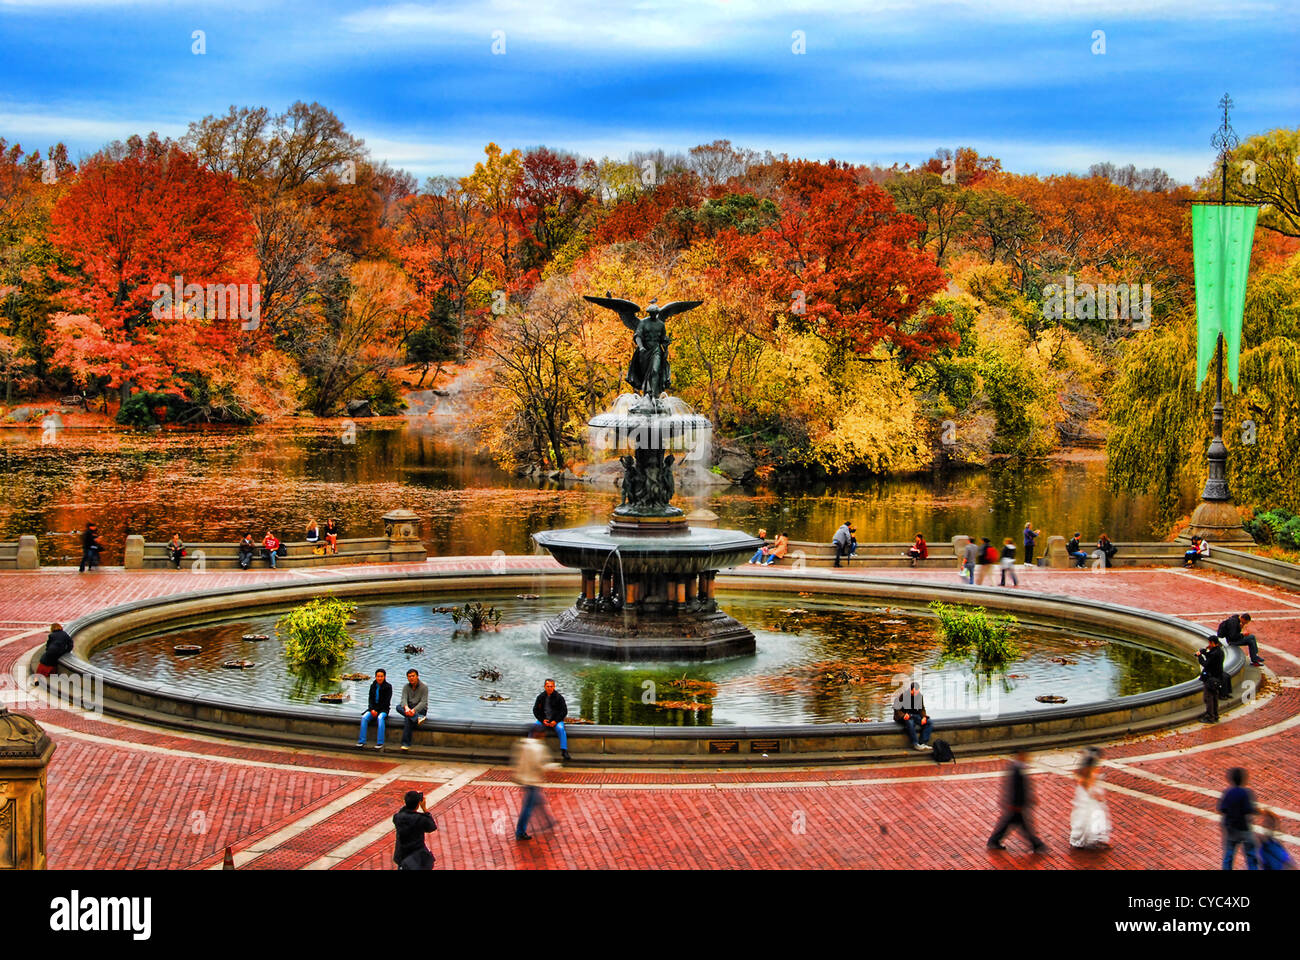 HDR-Bild von Bethesda Terrasse im Herbst, Central Park, Manhattan, New York City. Stockbild